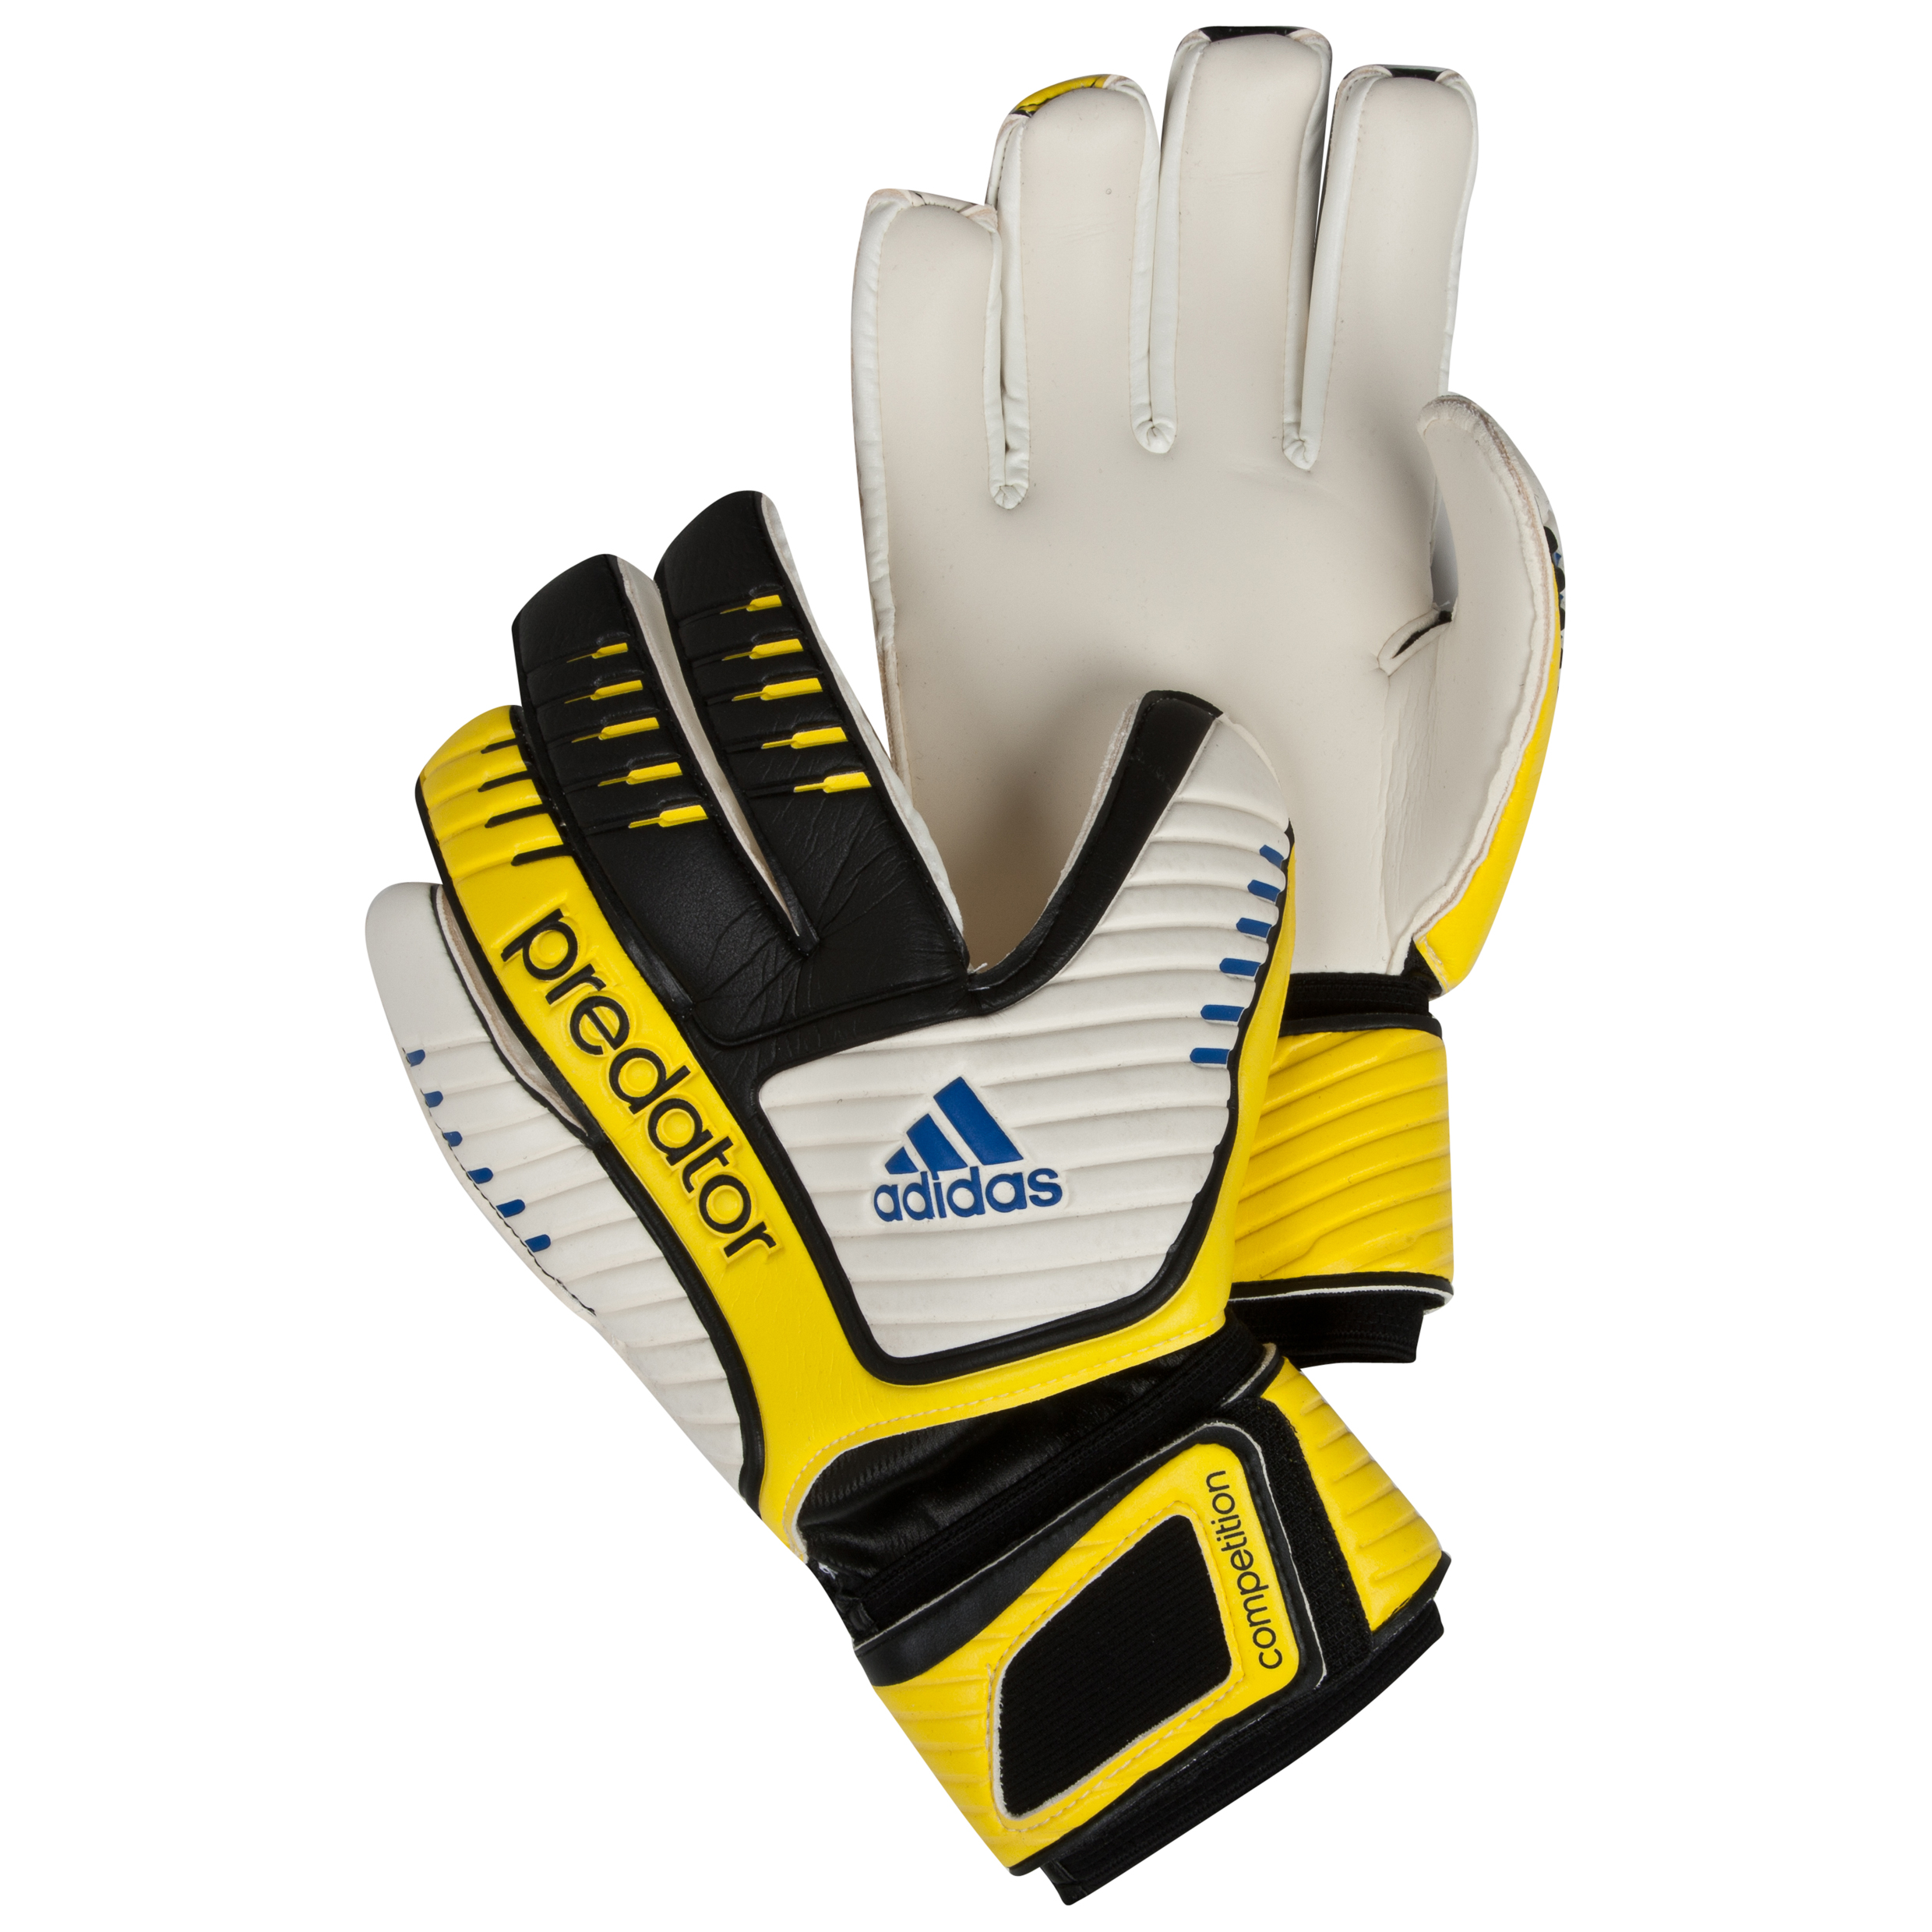 adidas Pred Comp Goalkeeper Gloves - Black/White/Vivid Yellow/Prime Blue